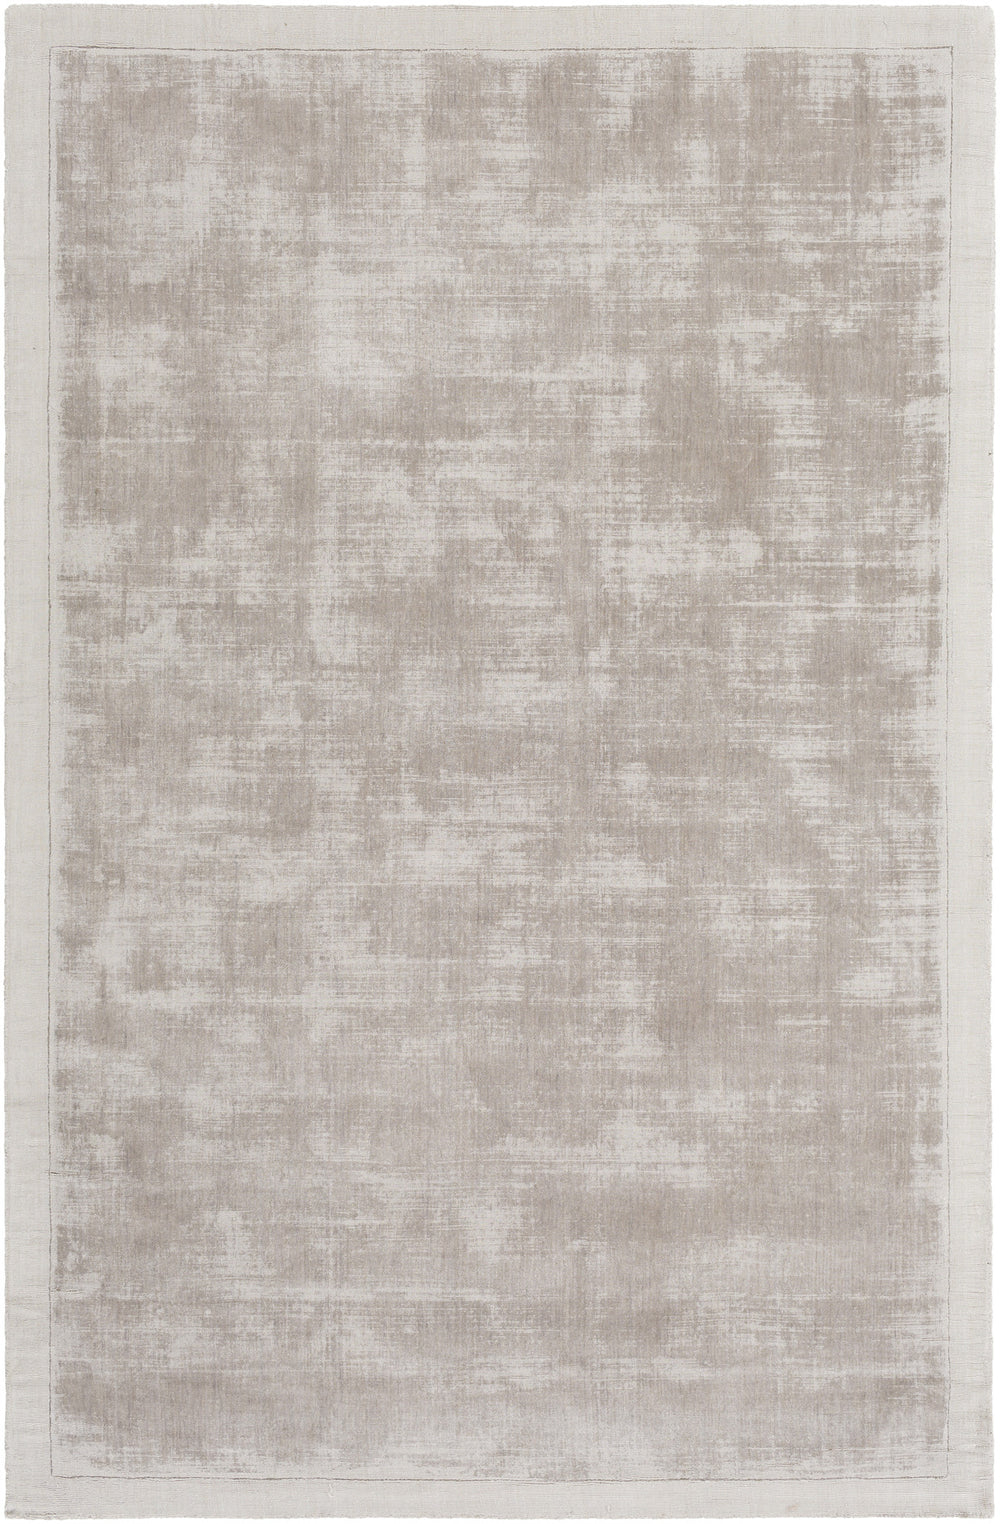 Artistic Weavers Silk Route Rainey AWSR4037 Area Rug